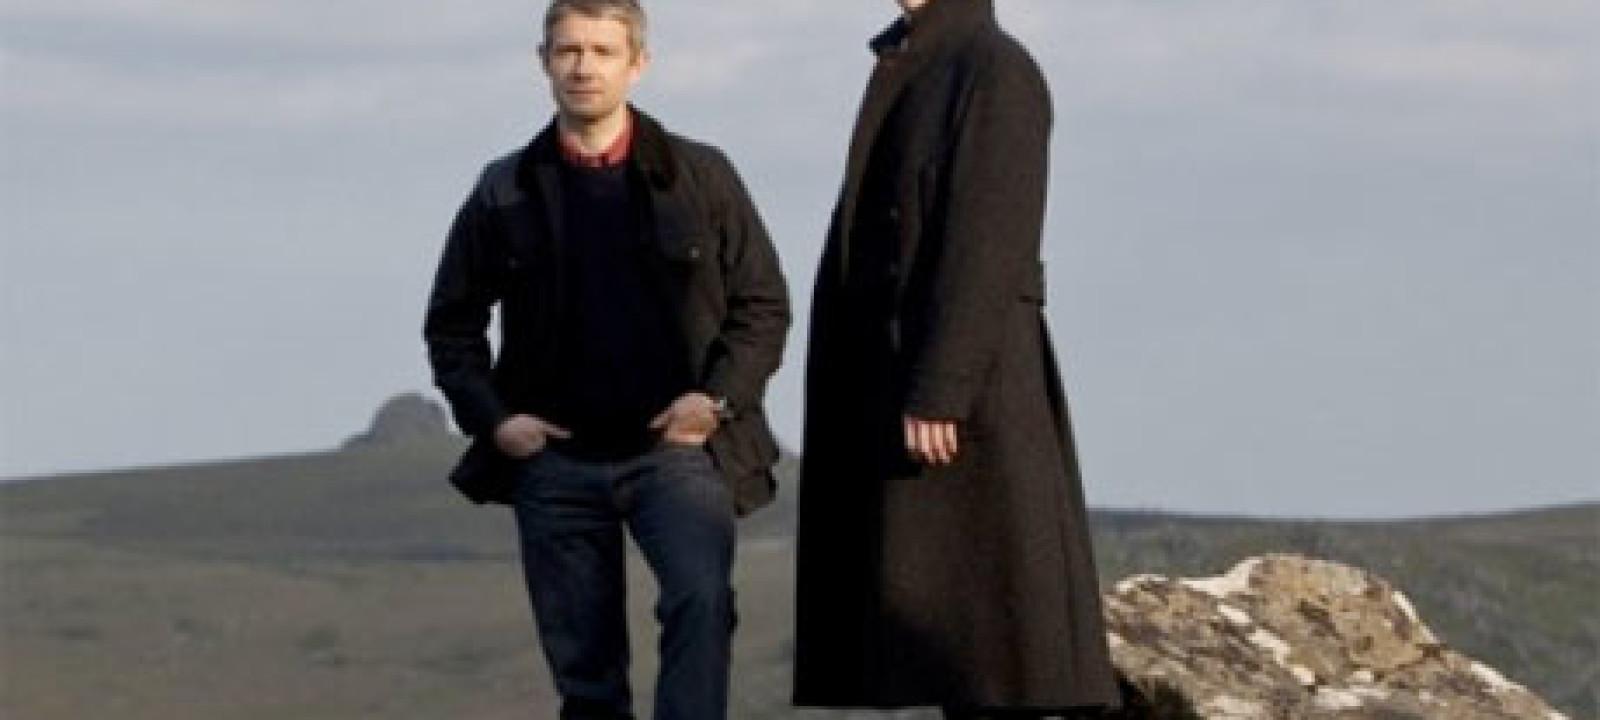 Martin Freeman and Benedict Cumberbatch in Sherlock: The Hounds of Baskerville